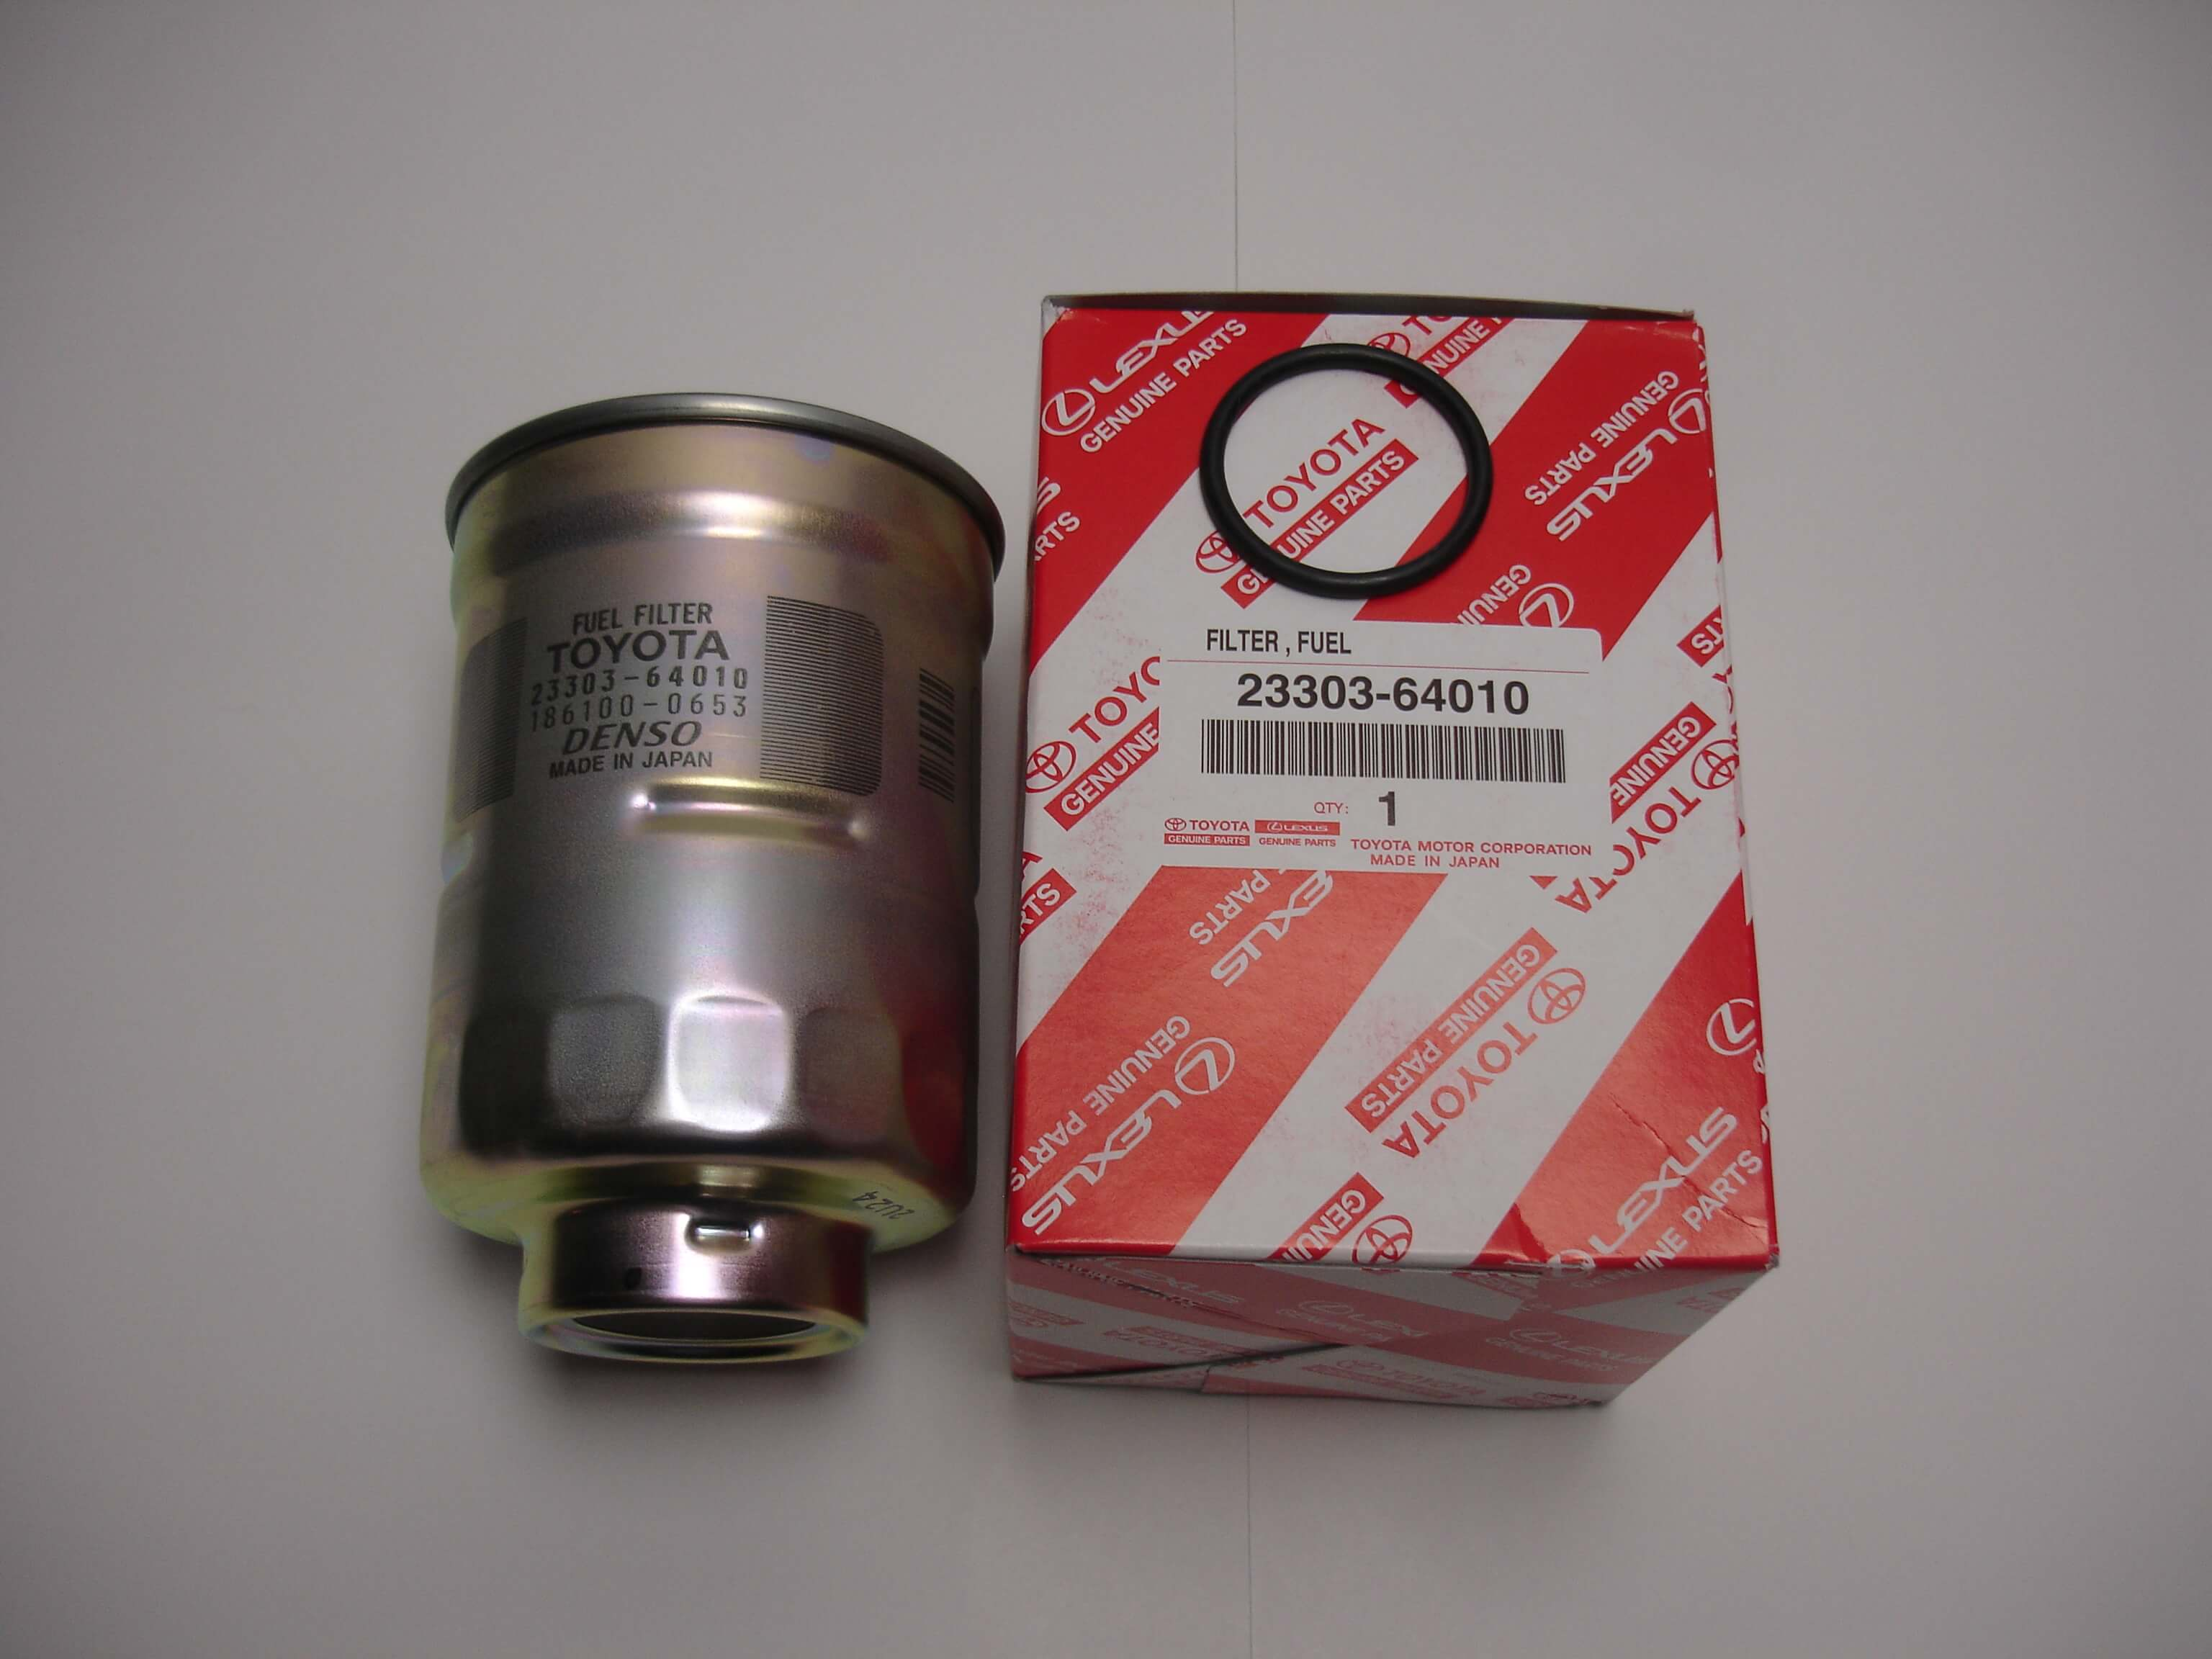 Toyota Oem Fuel Filter For 1kz 1kd 2kd Diesel 4runner Land Cruiser 23303 64010 Street Solutions